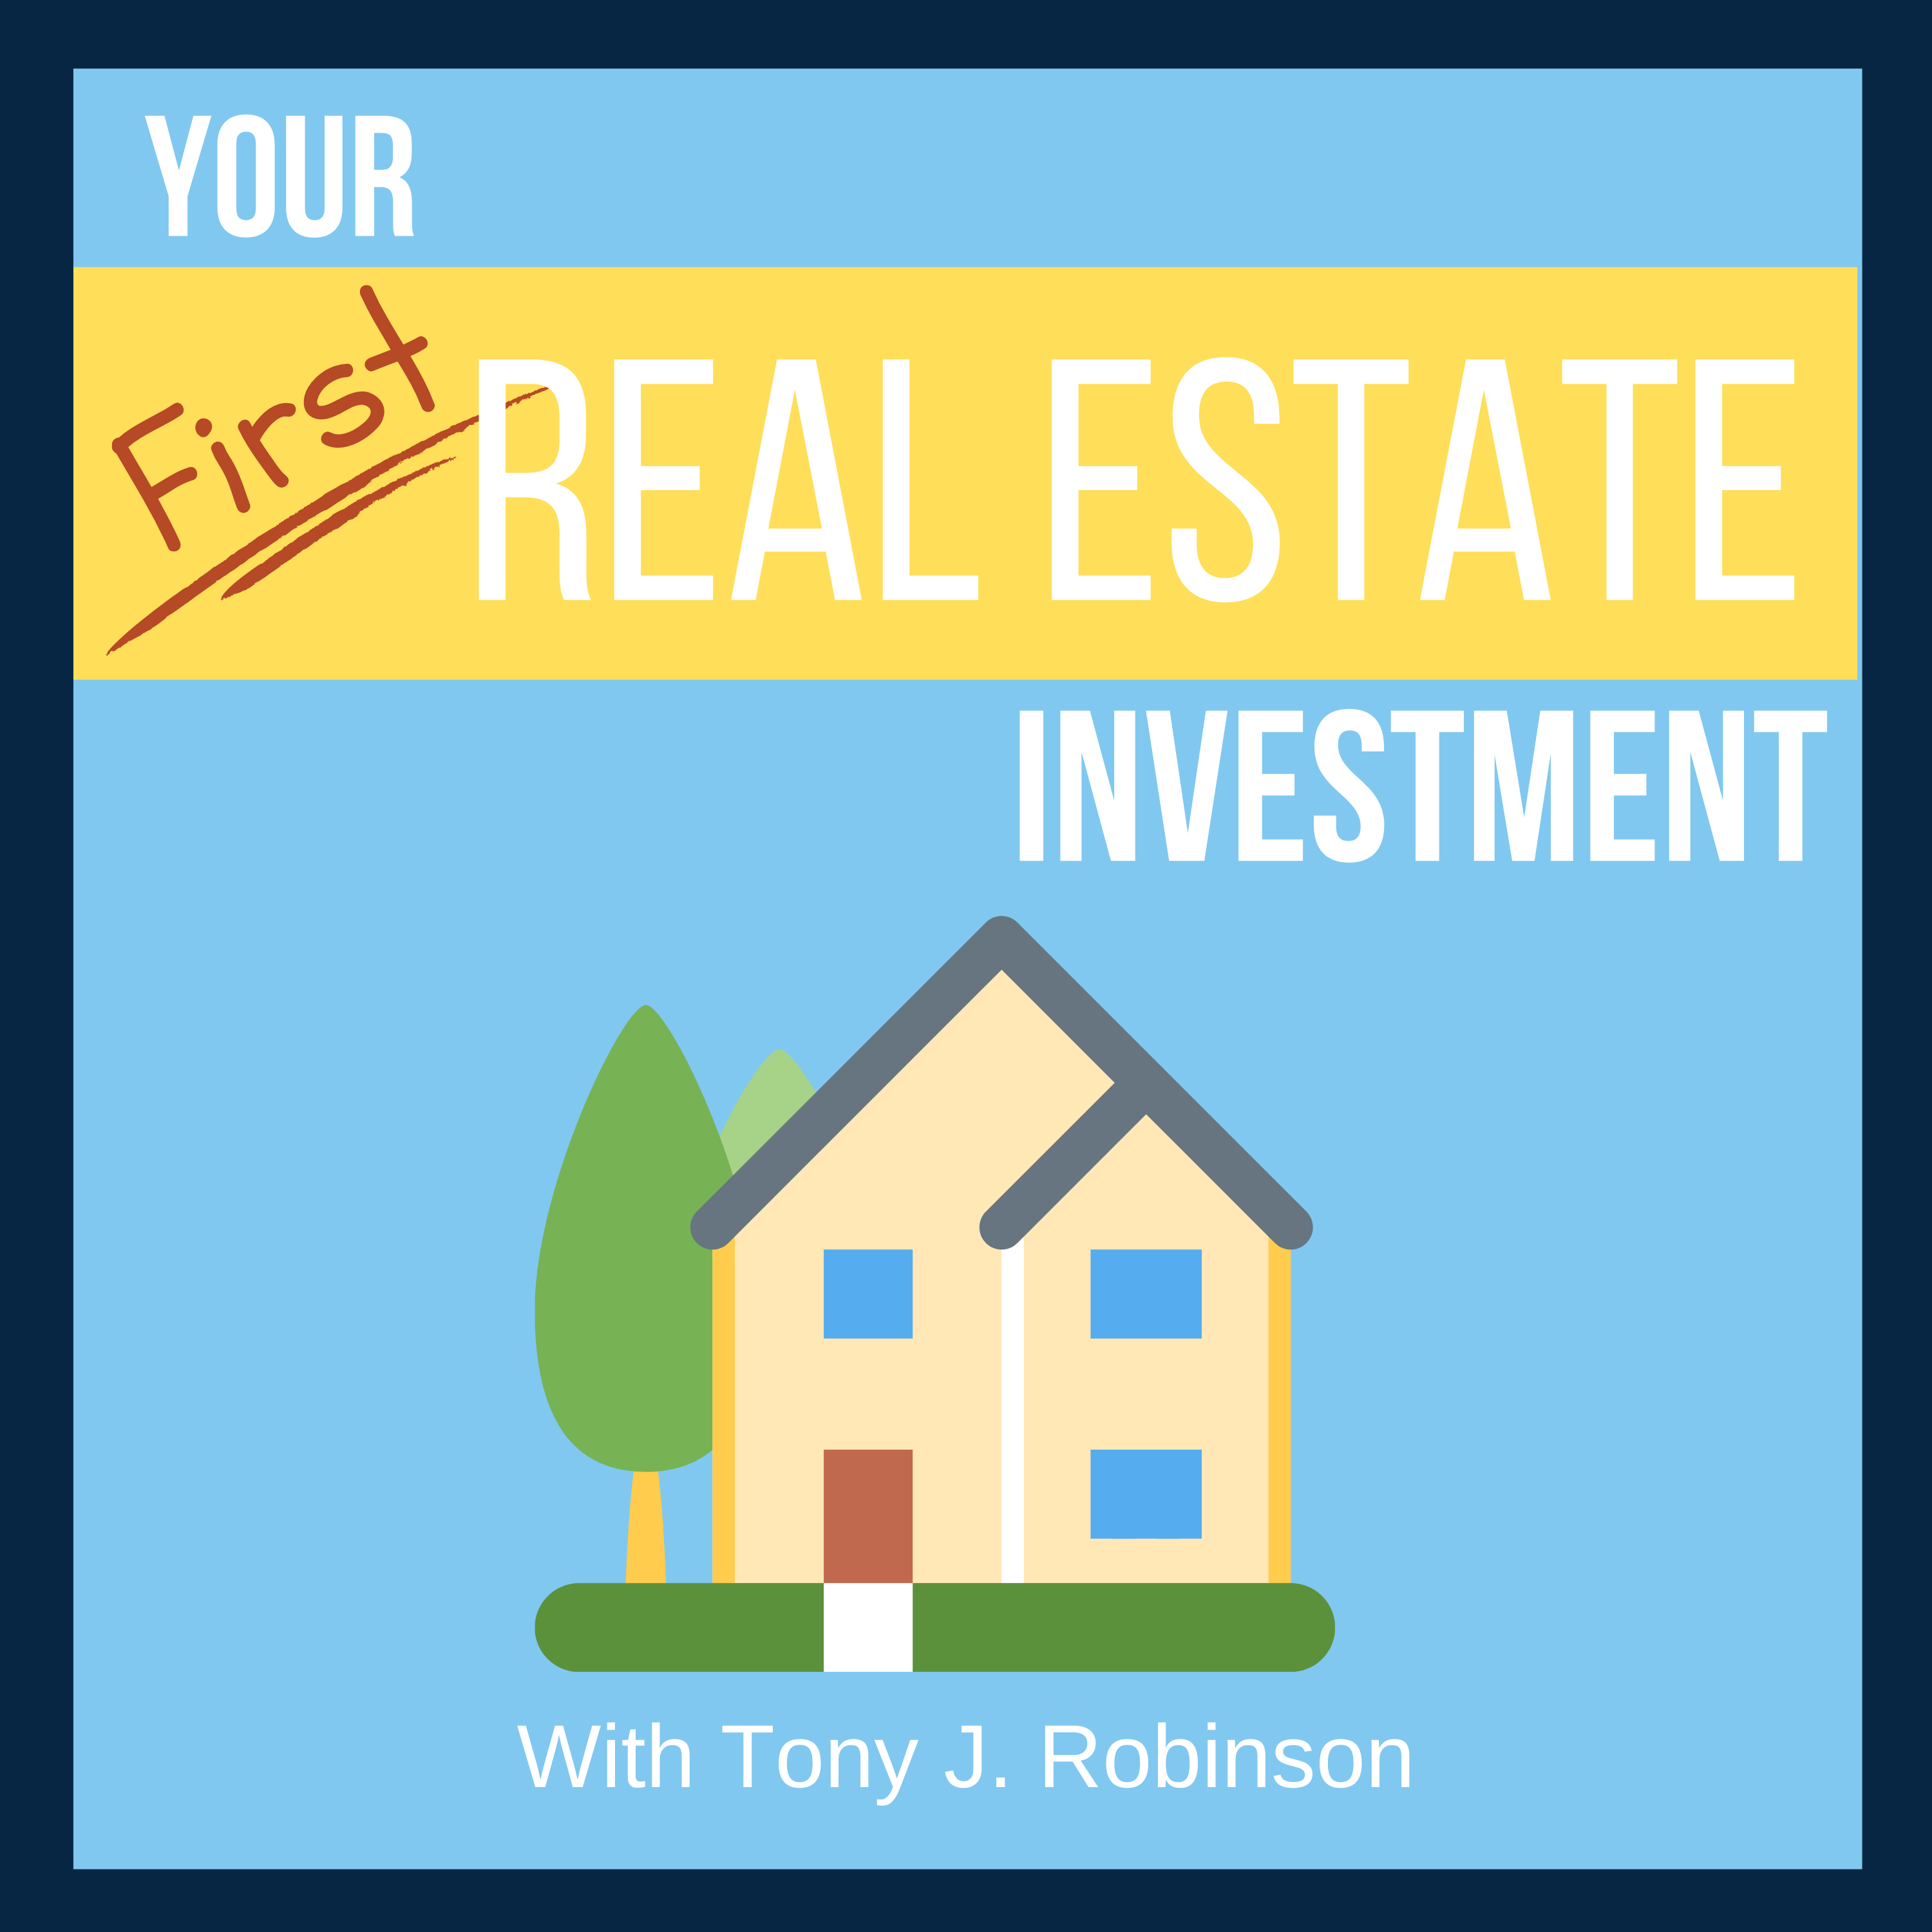 Your First Real Estate Investment